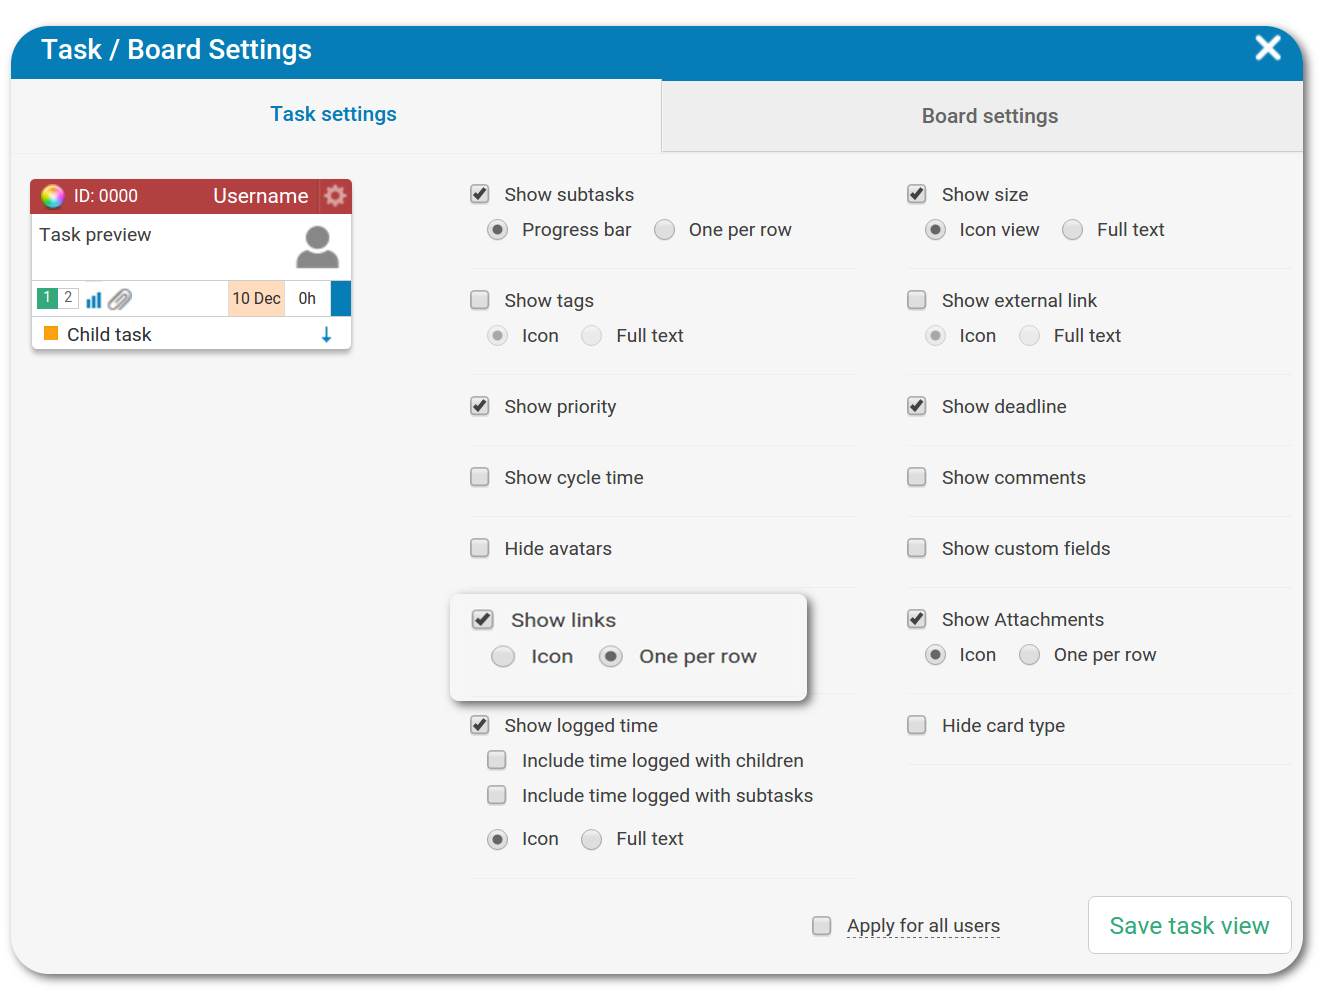 Task board settings